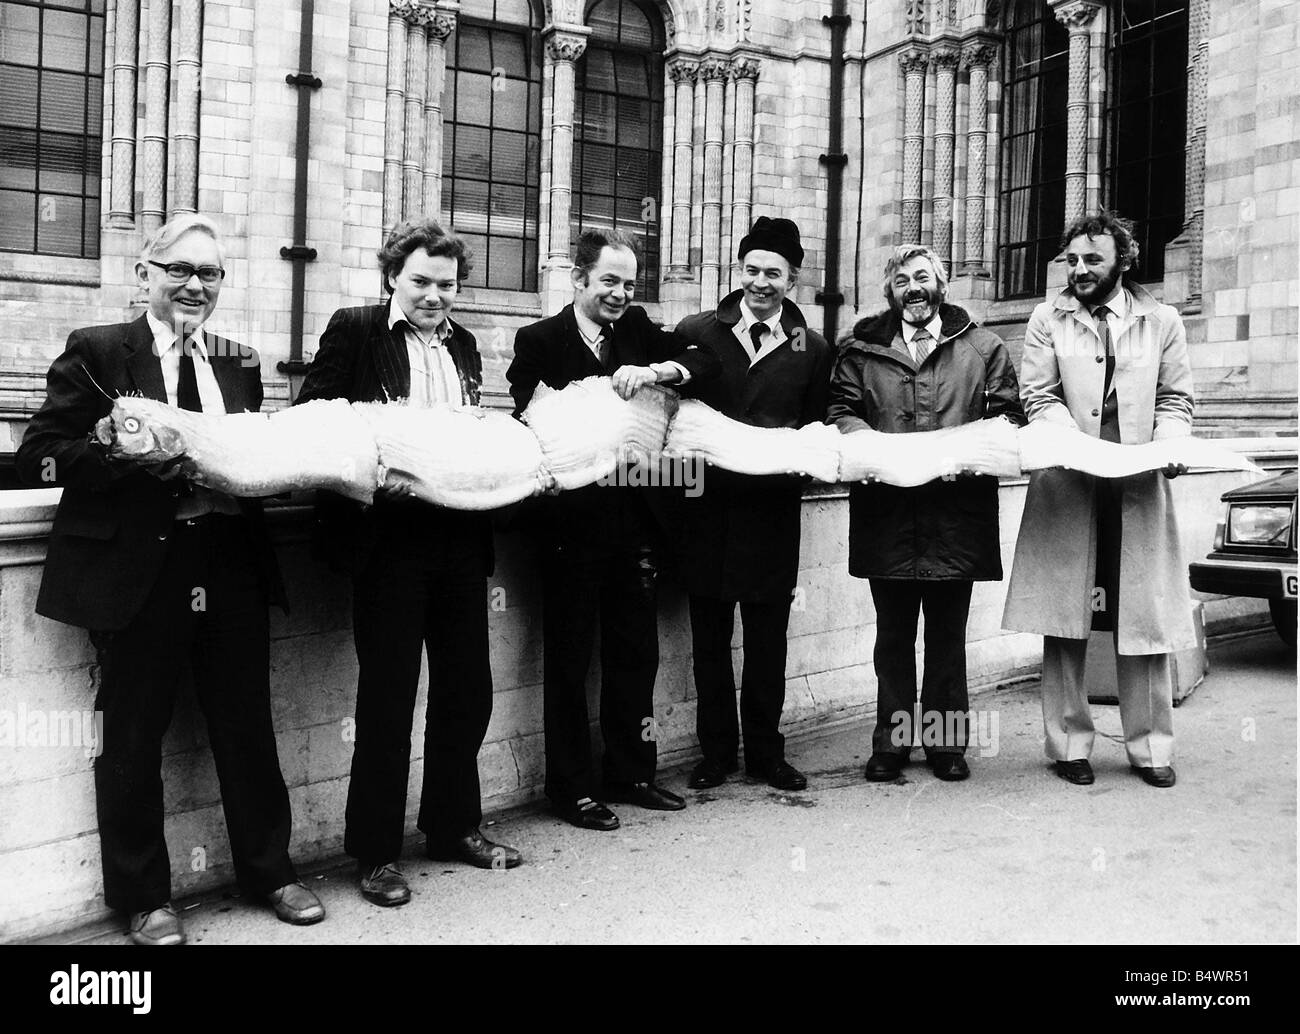 Oarfish staff Natural History Museum with oarfish found Whitby Yorkshire - Stock Image